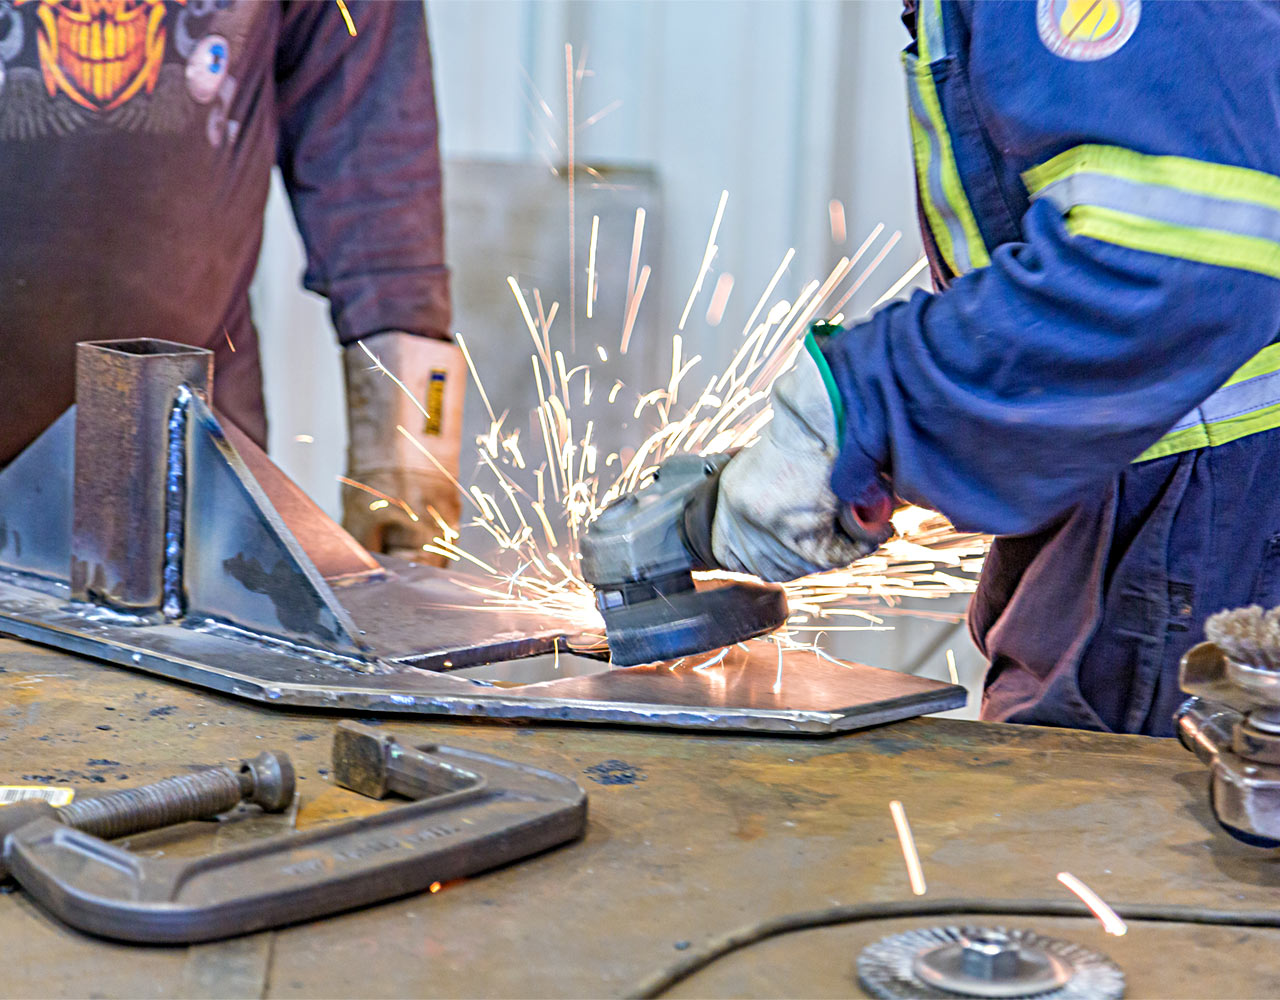 Two Men's Hands Welding With Sparks